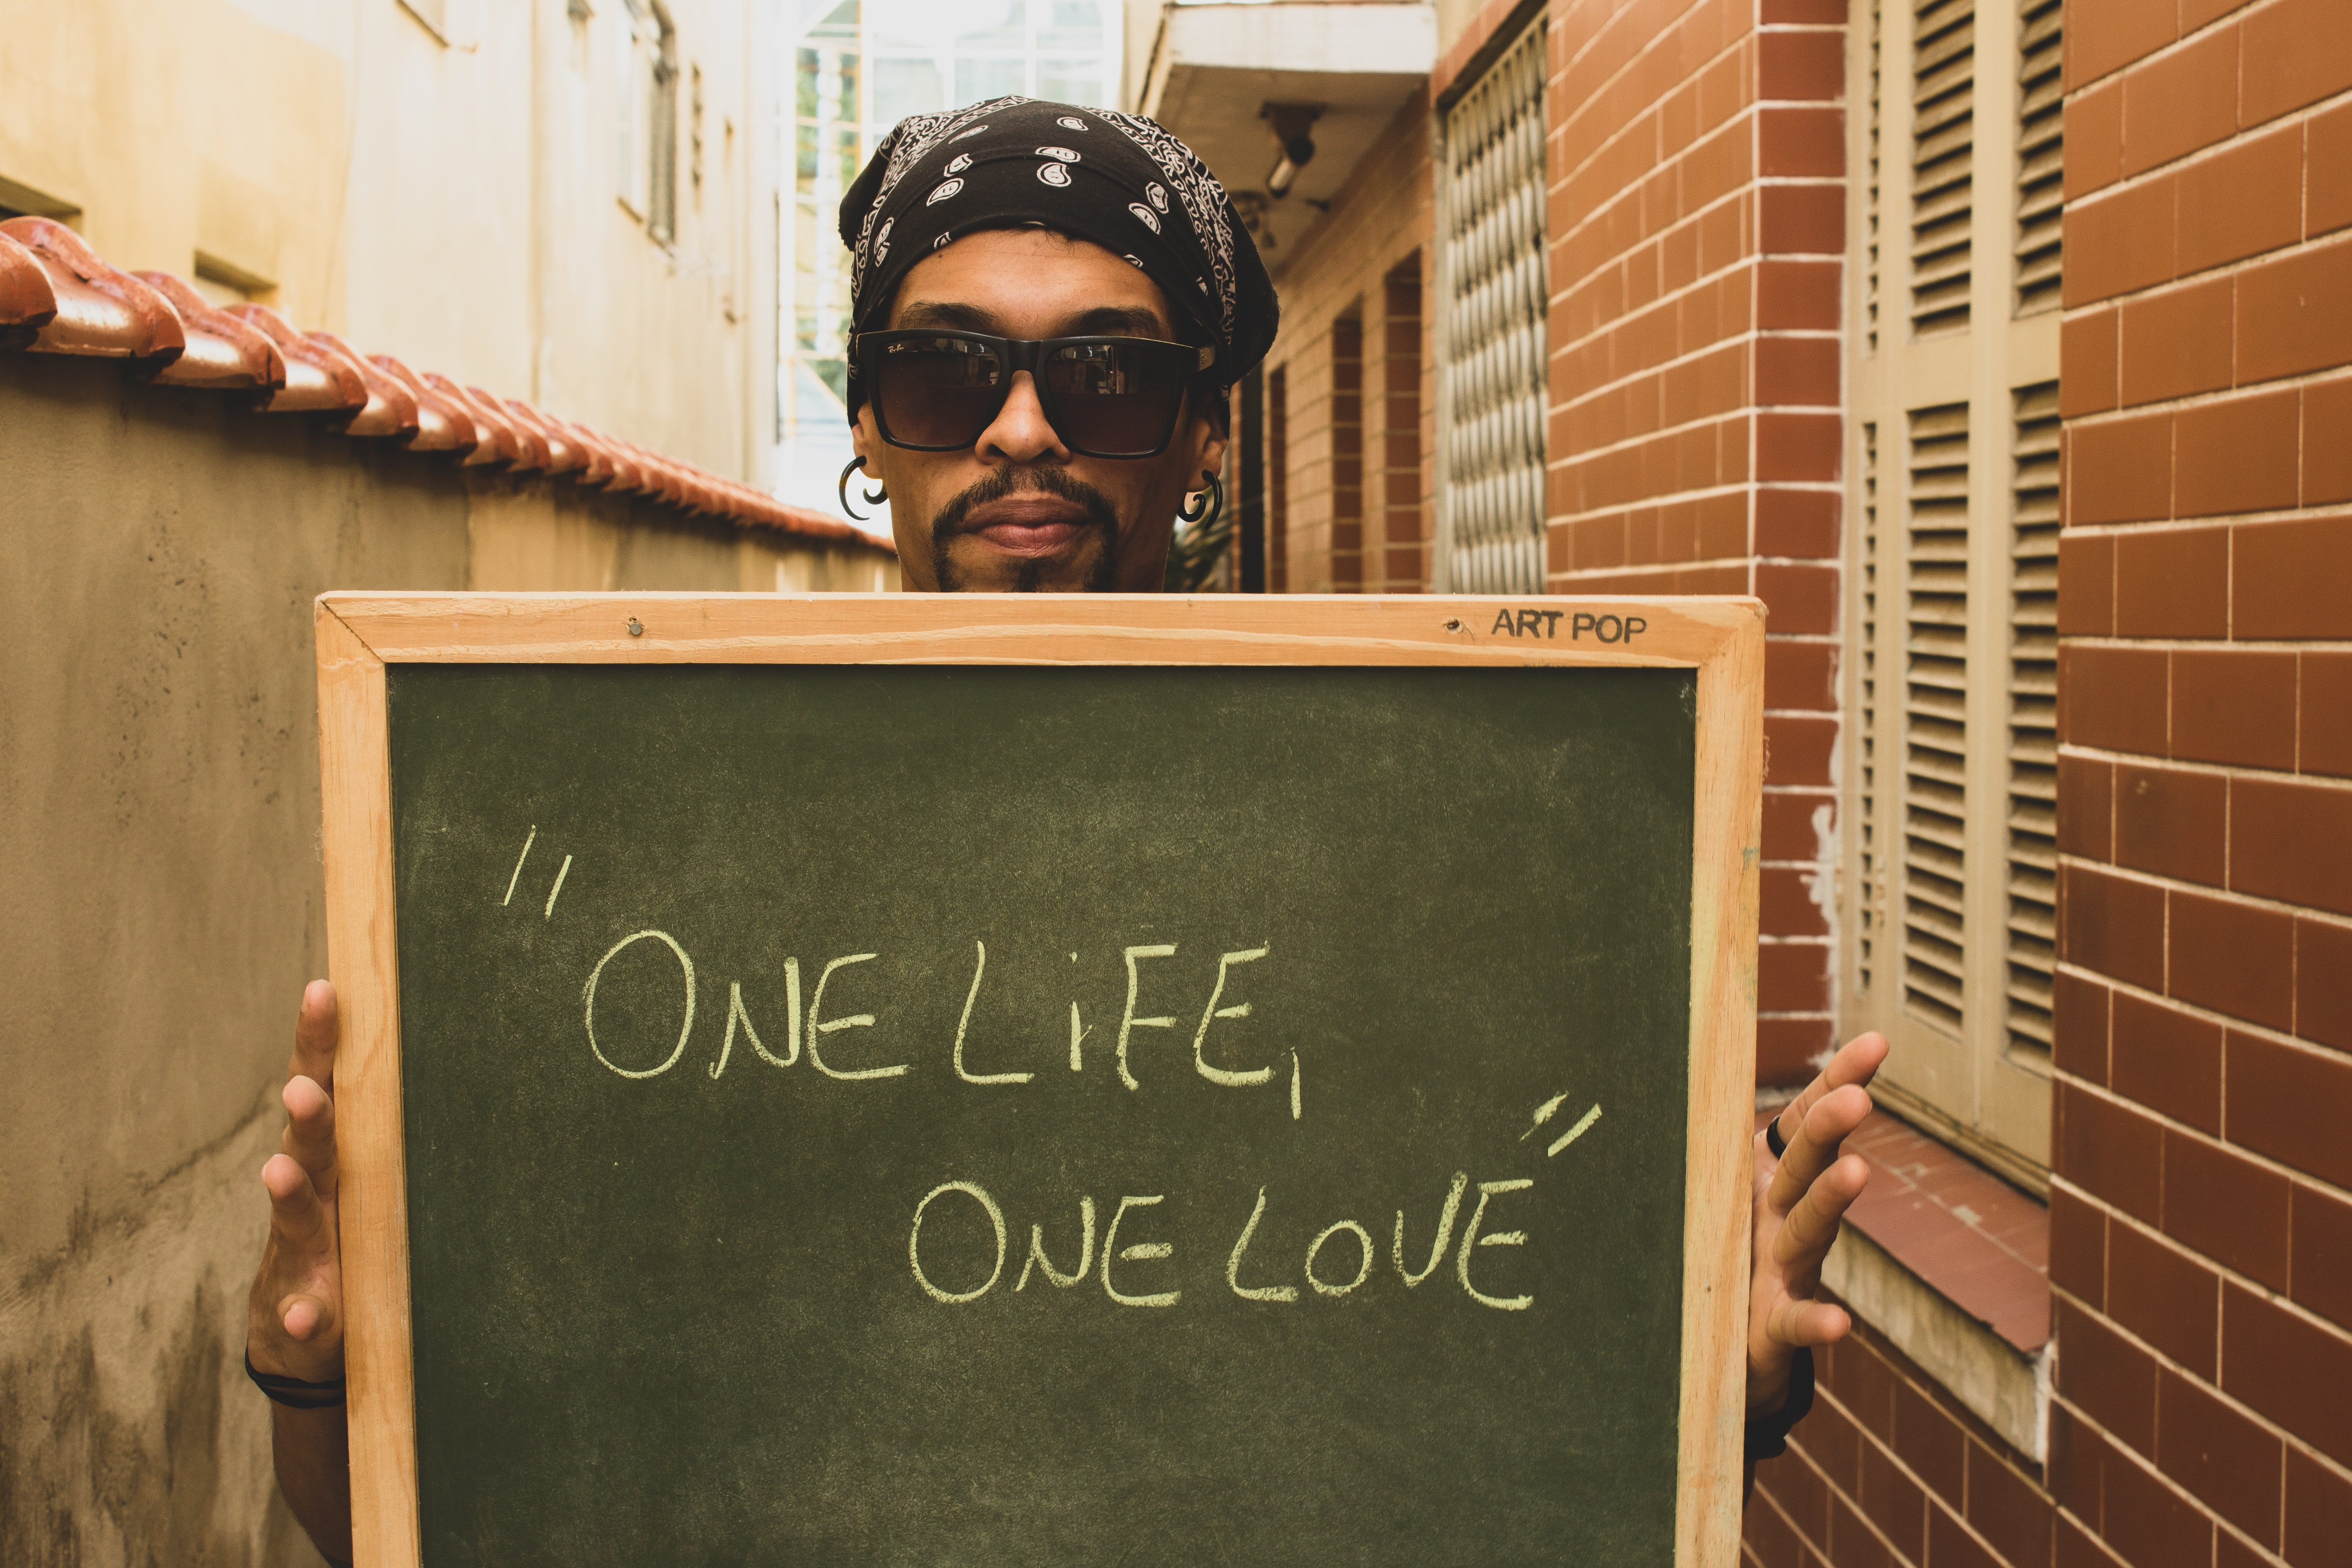 man holding one life one love board